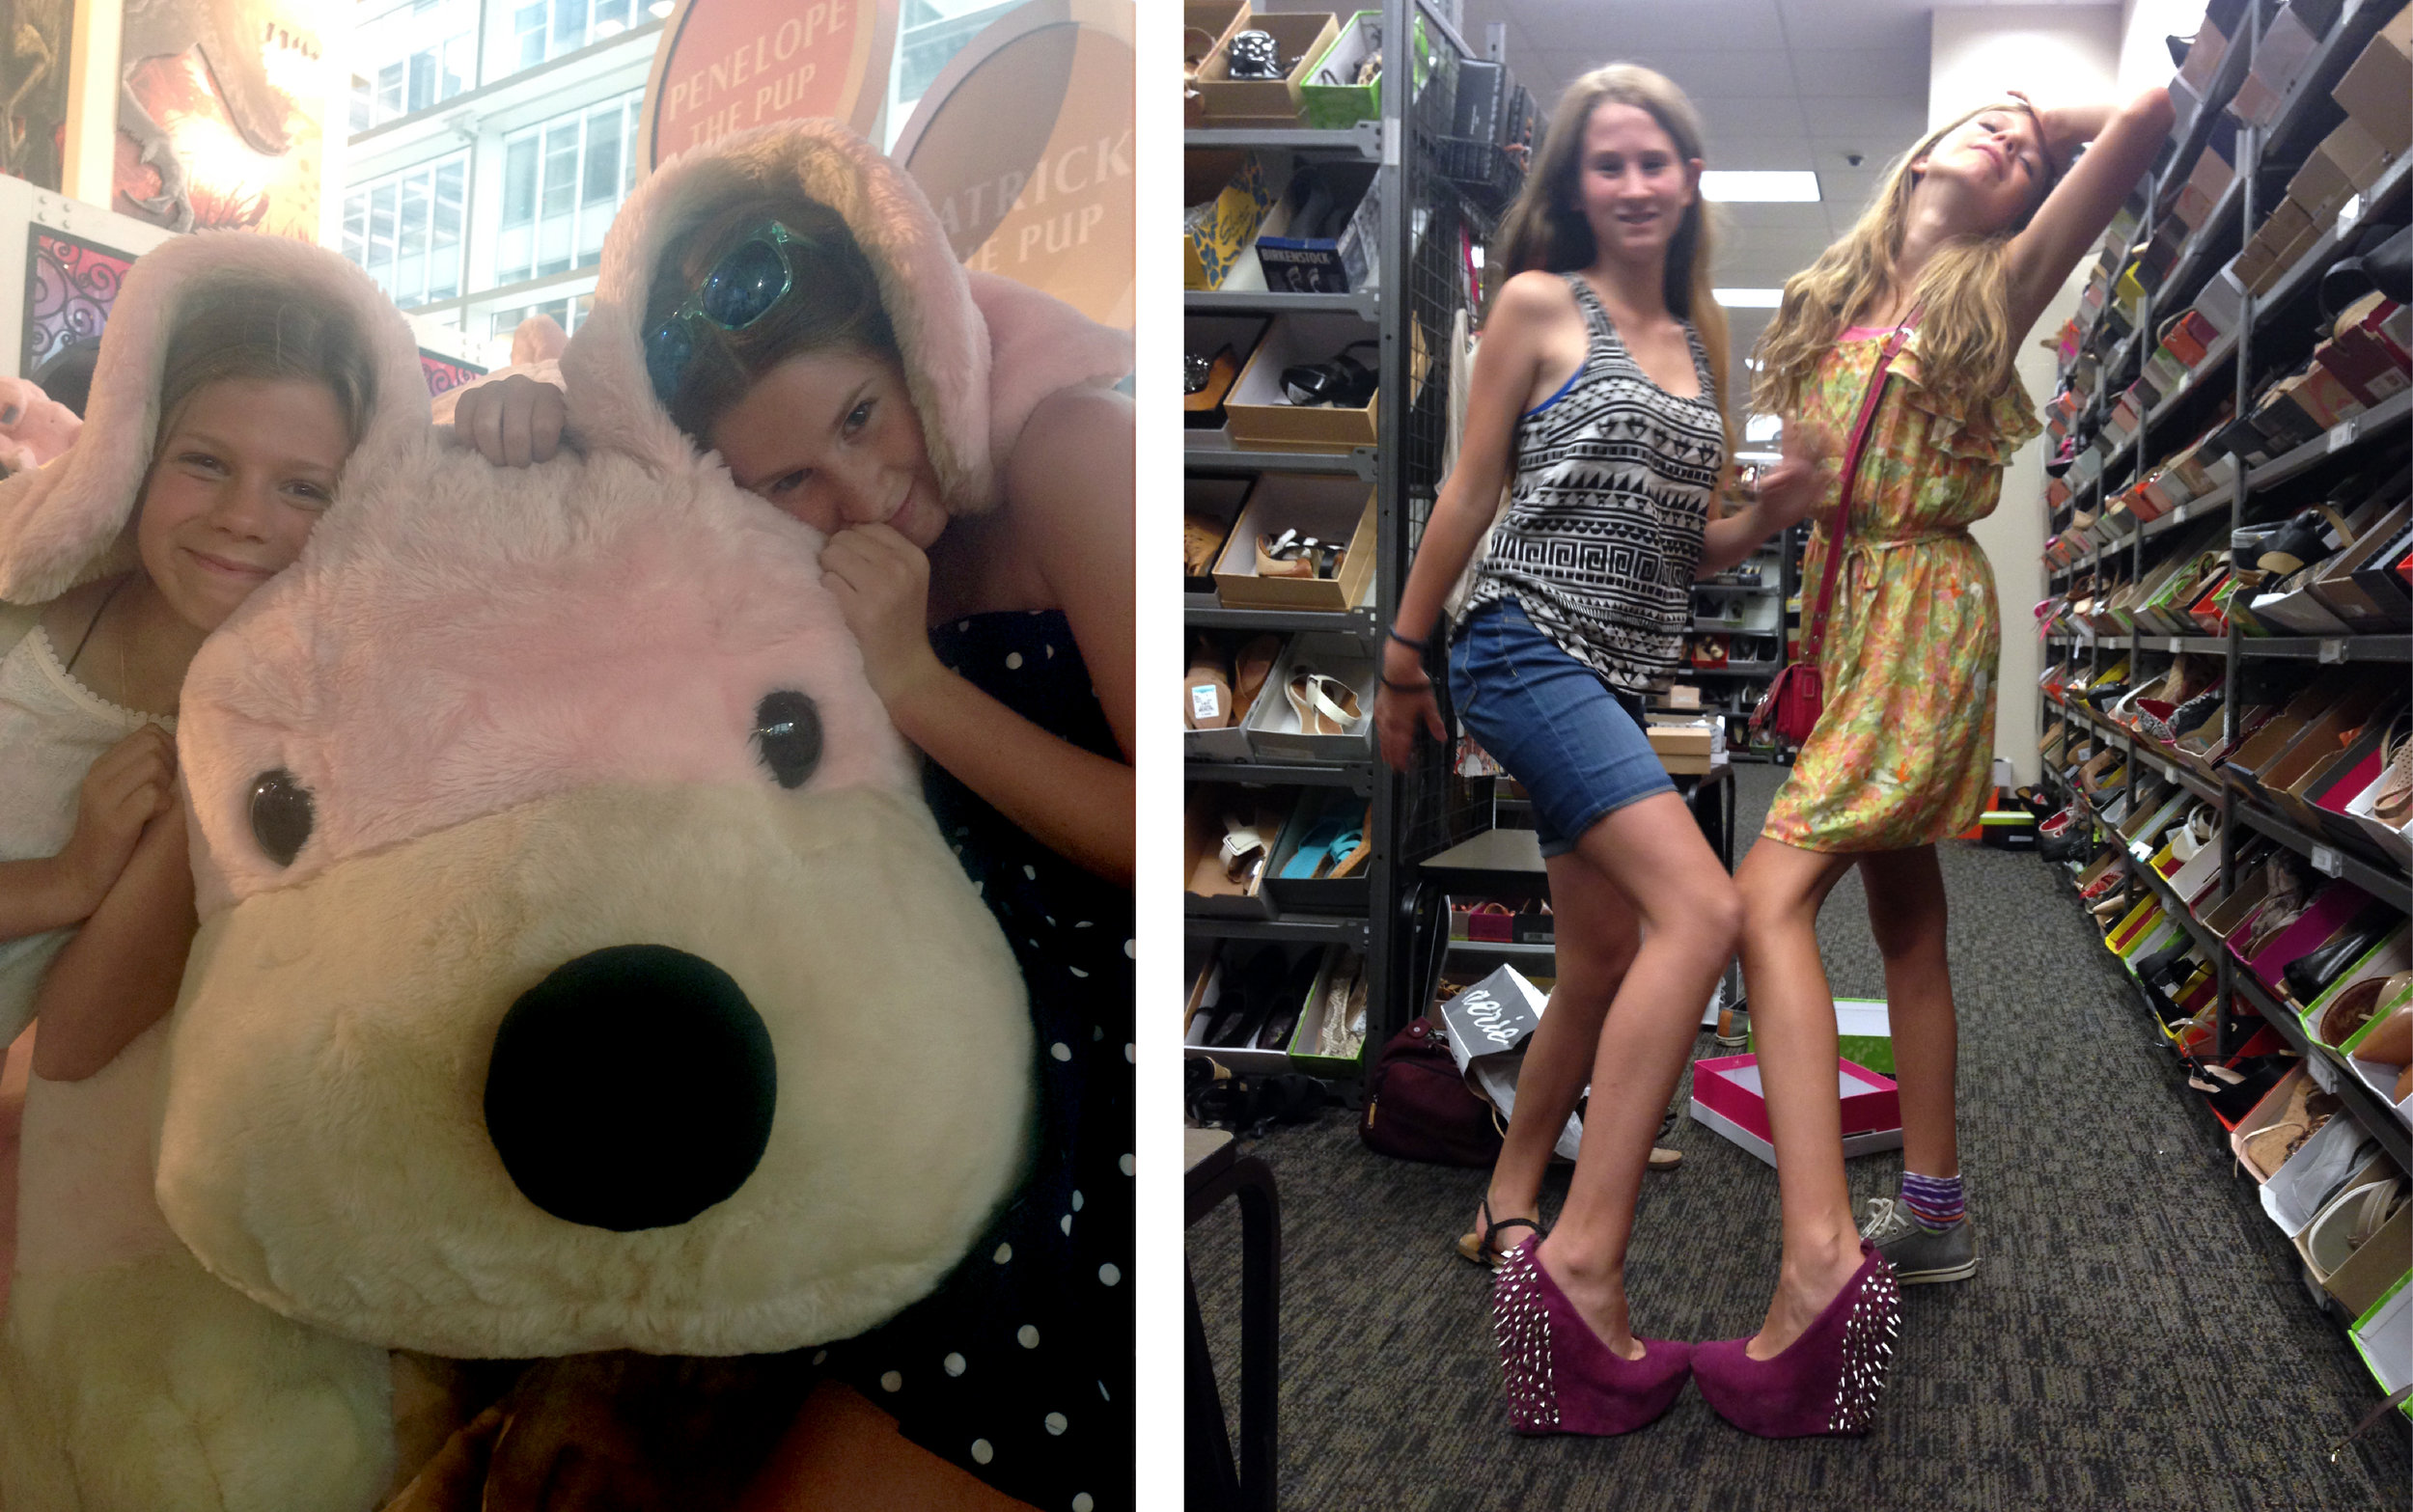 From the cuddly department at FAO Schwartz to the studdly shoe department at Nordstrom Rack.